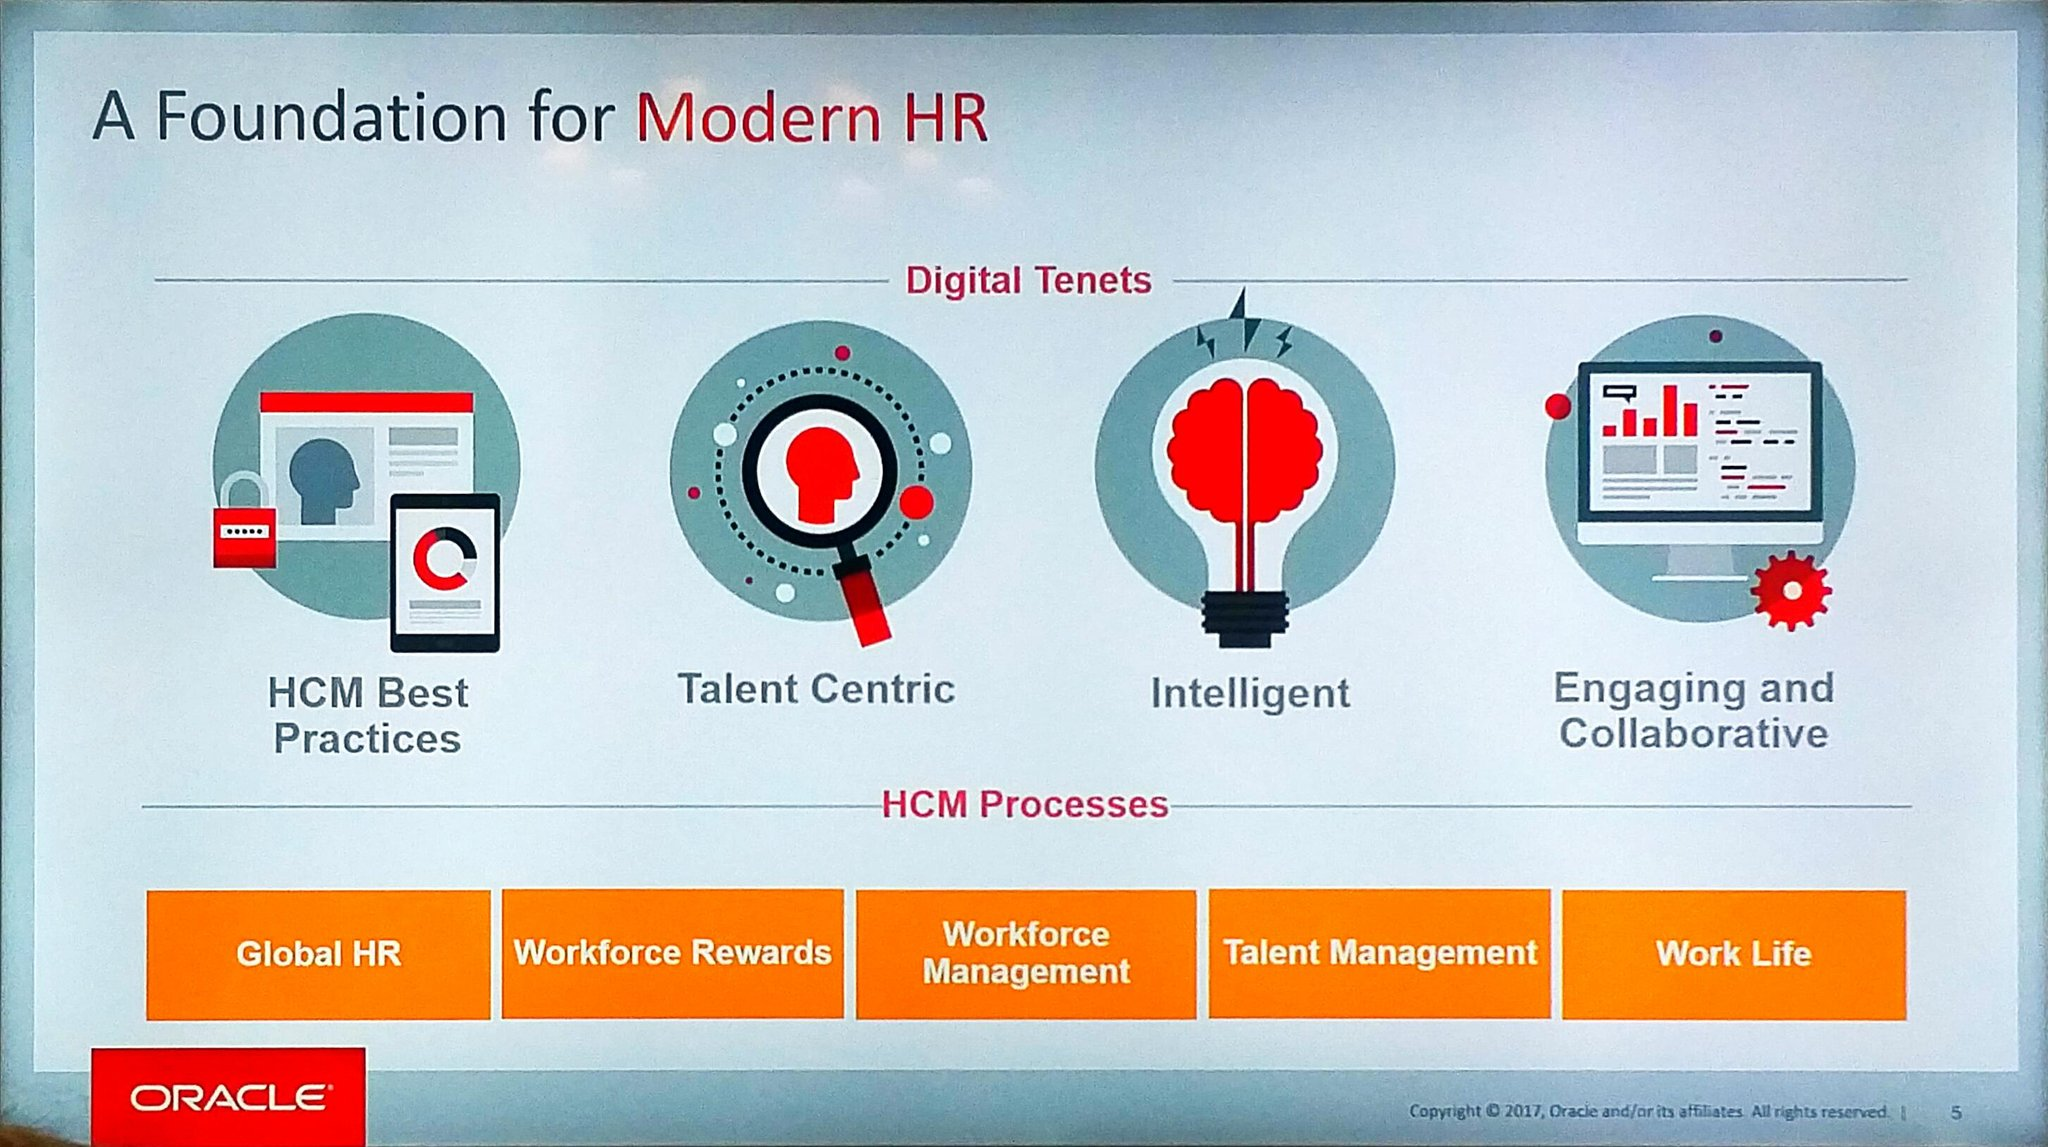 .@OracleHCM 5 Processes on 4 Digital Tenets: - HCM Best Practices / Talent Centric / Intelligent / Engaging and Collaborative  #OracleHCM https://t.co/pwkpbOSoDX